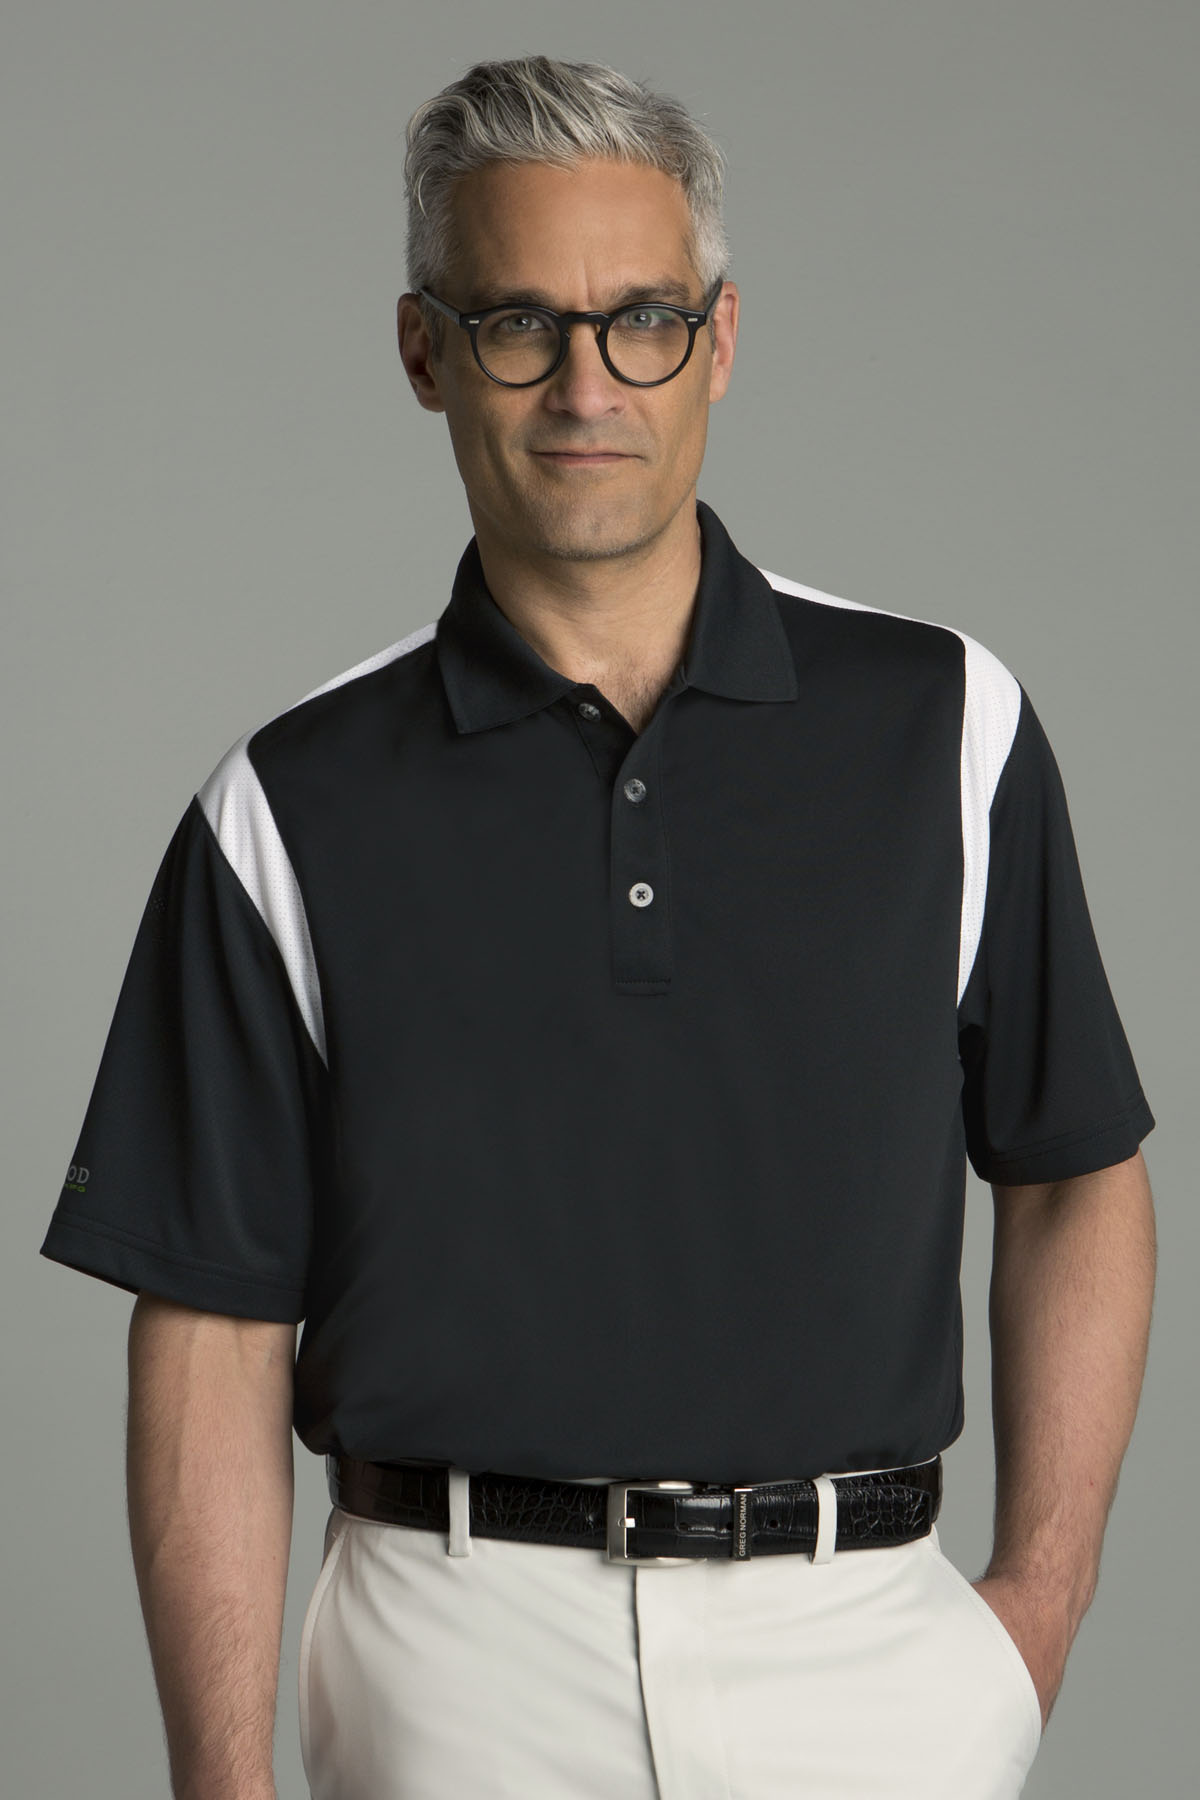 Izod IZOD0095 - Performance Blocked Polo